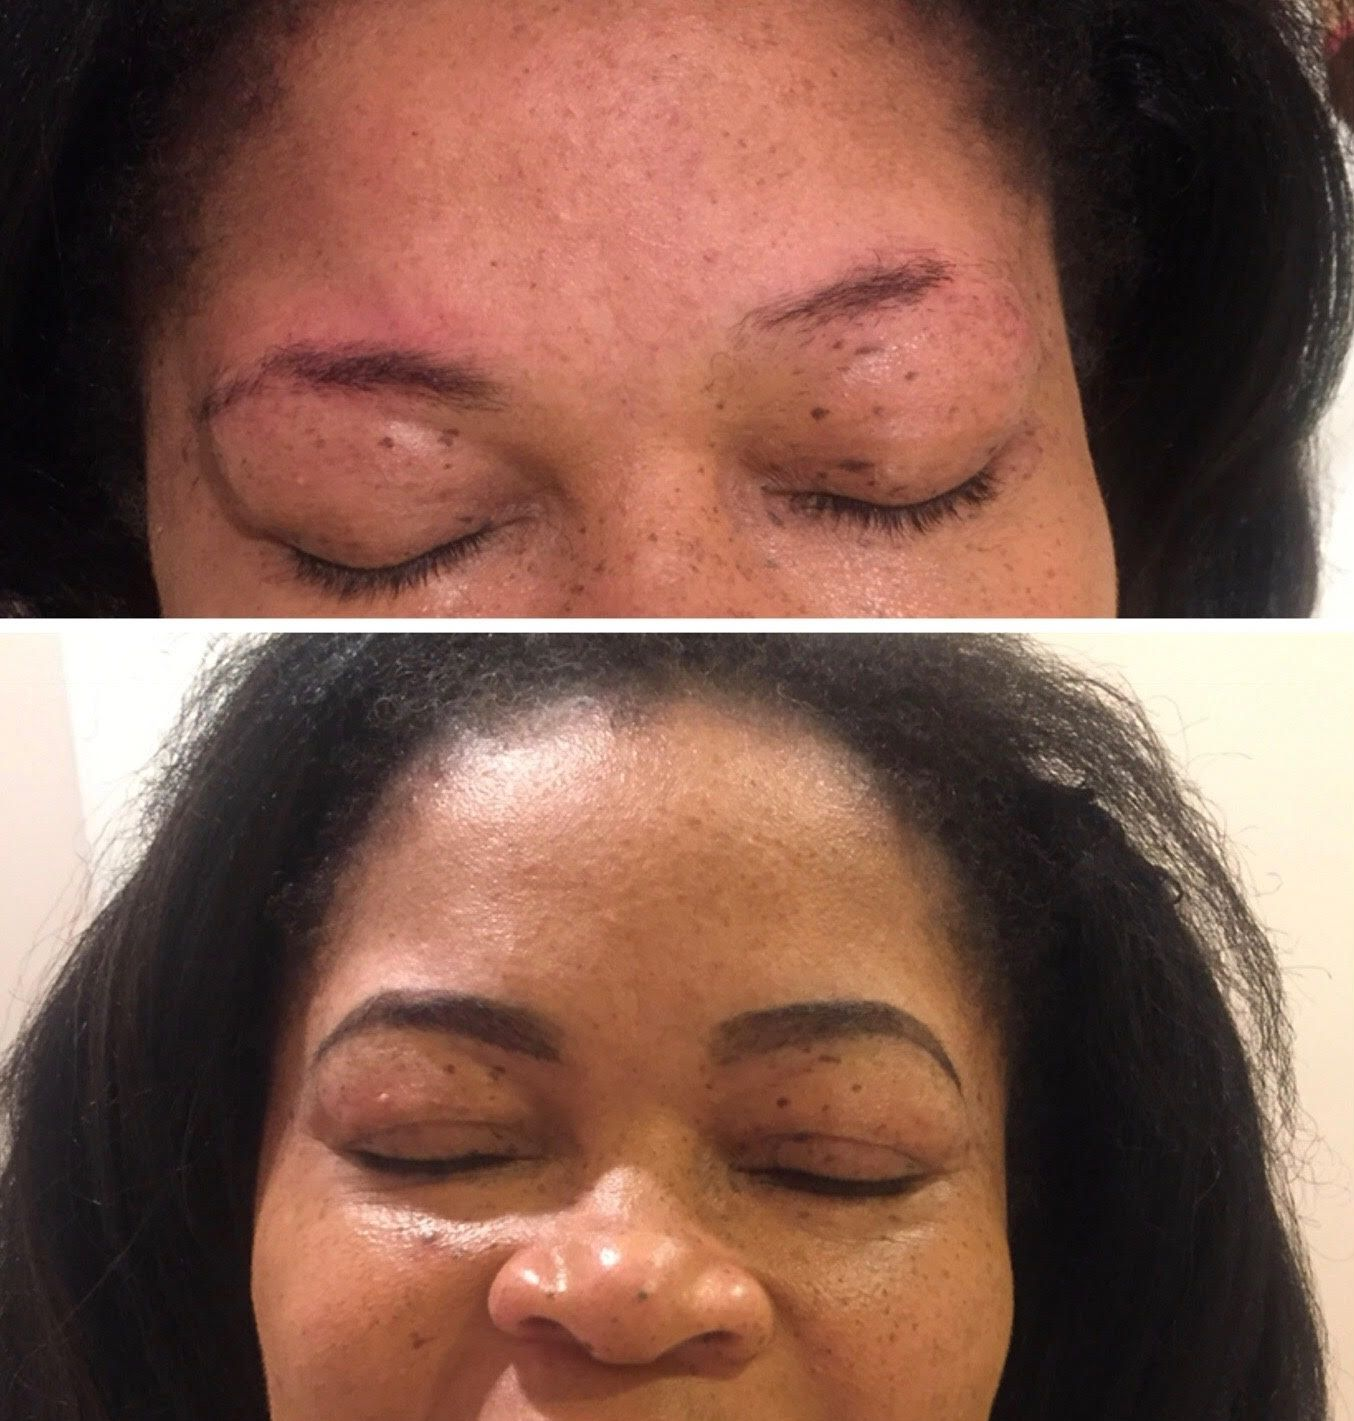 Big Eyebrow Transformation!!! Client was unhappy with her